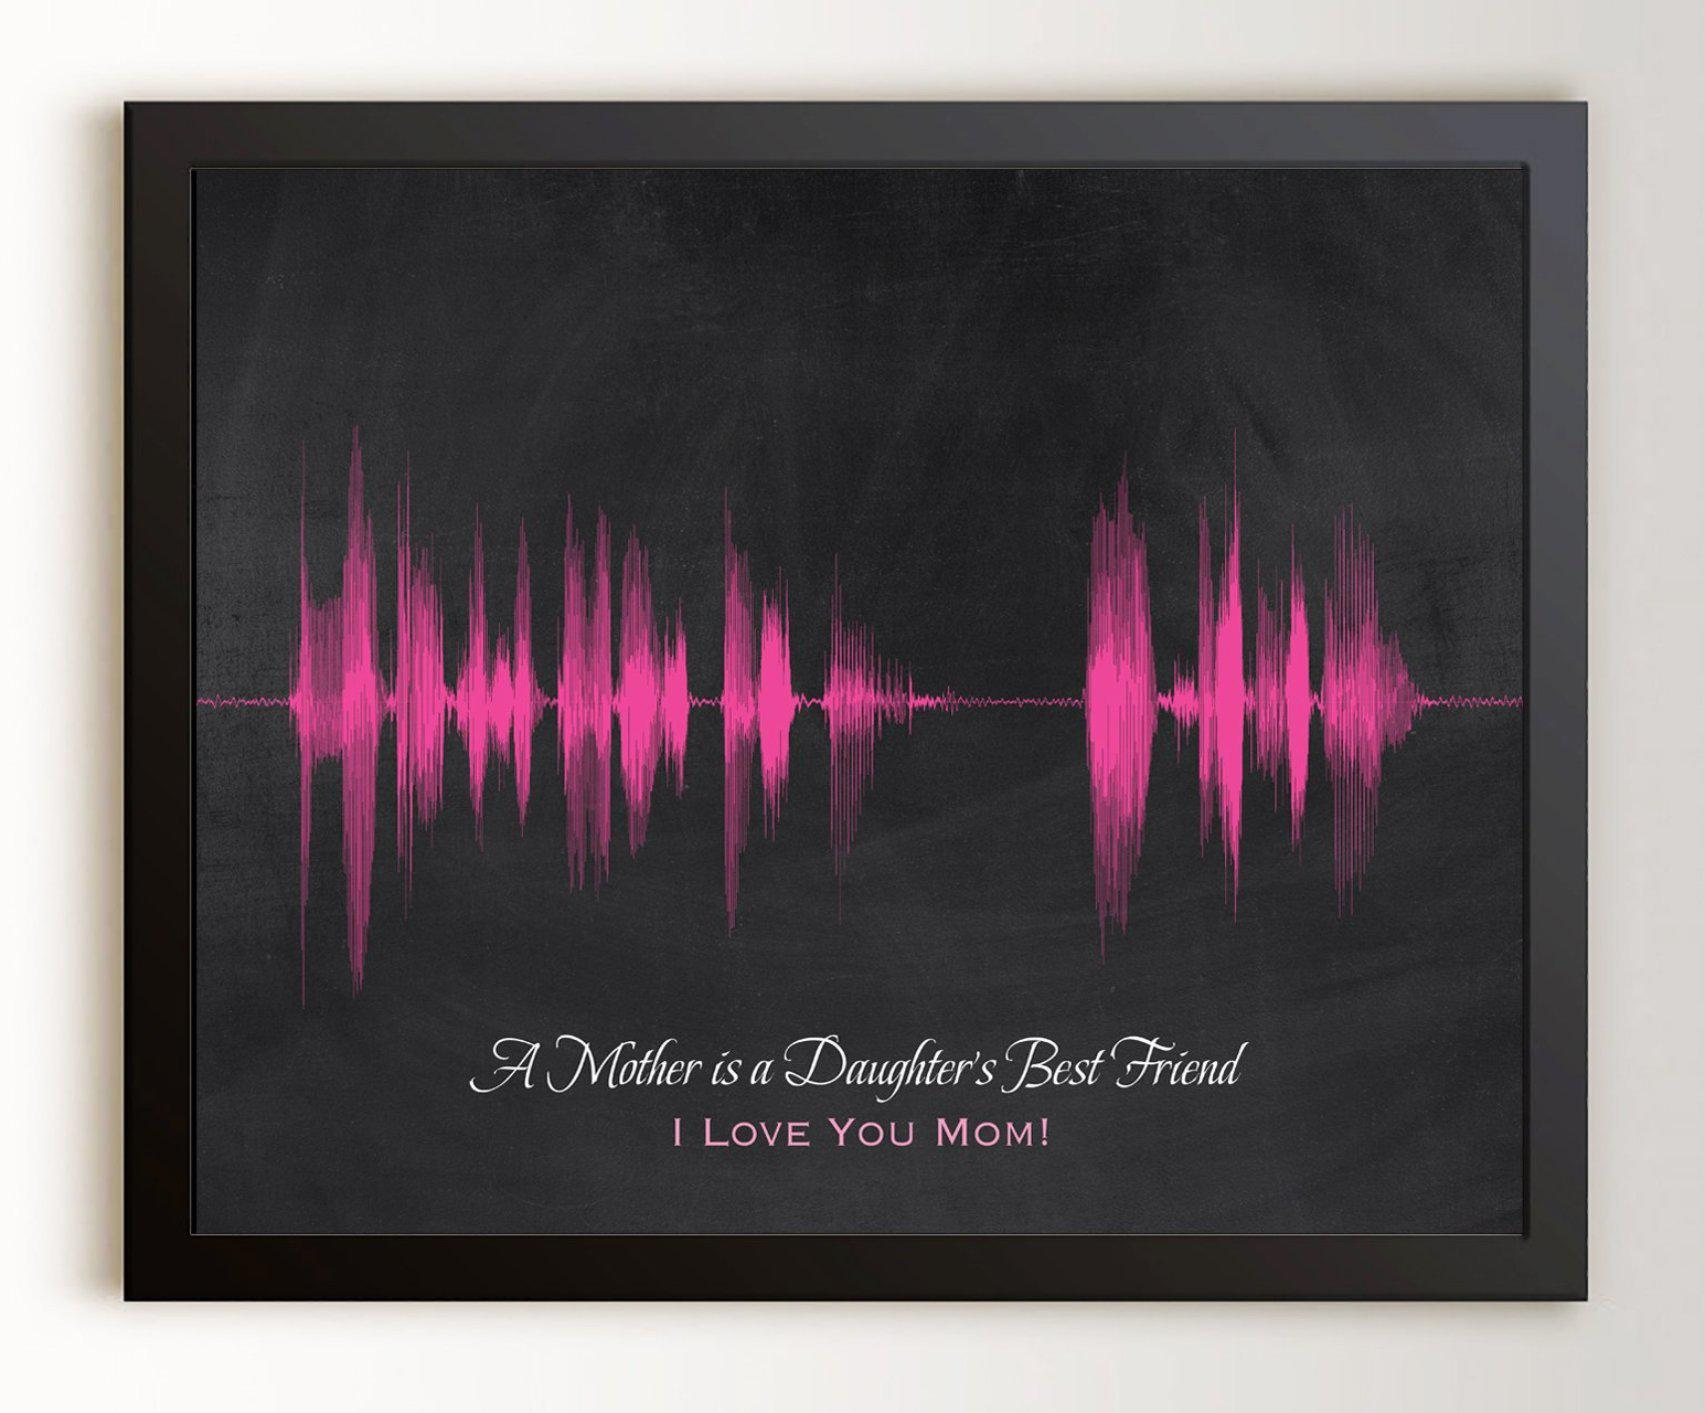 Gift for Mom from Daughter - Personalized Voice Art - Artsy Voiceprint